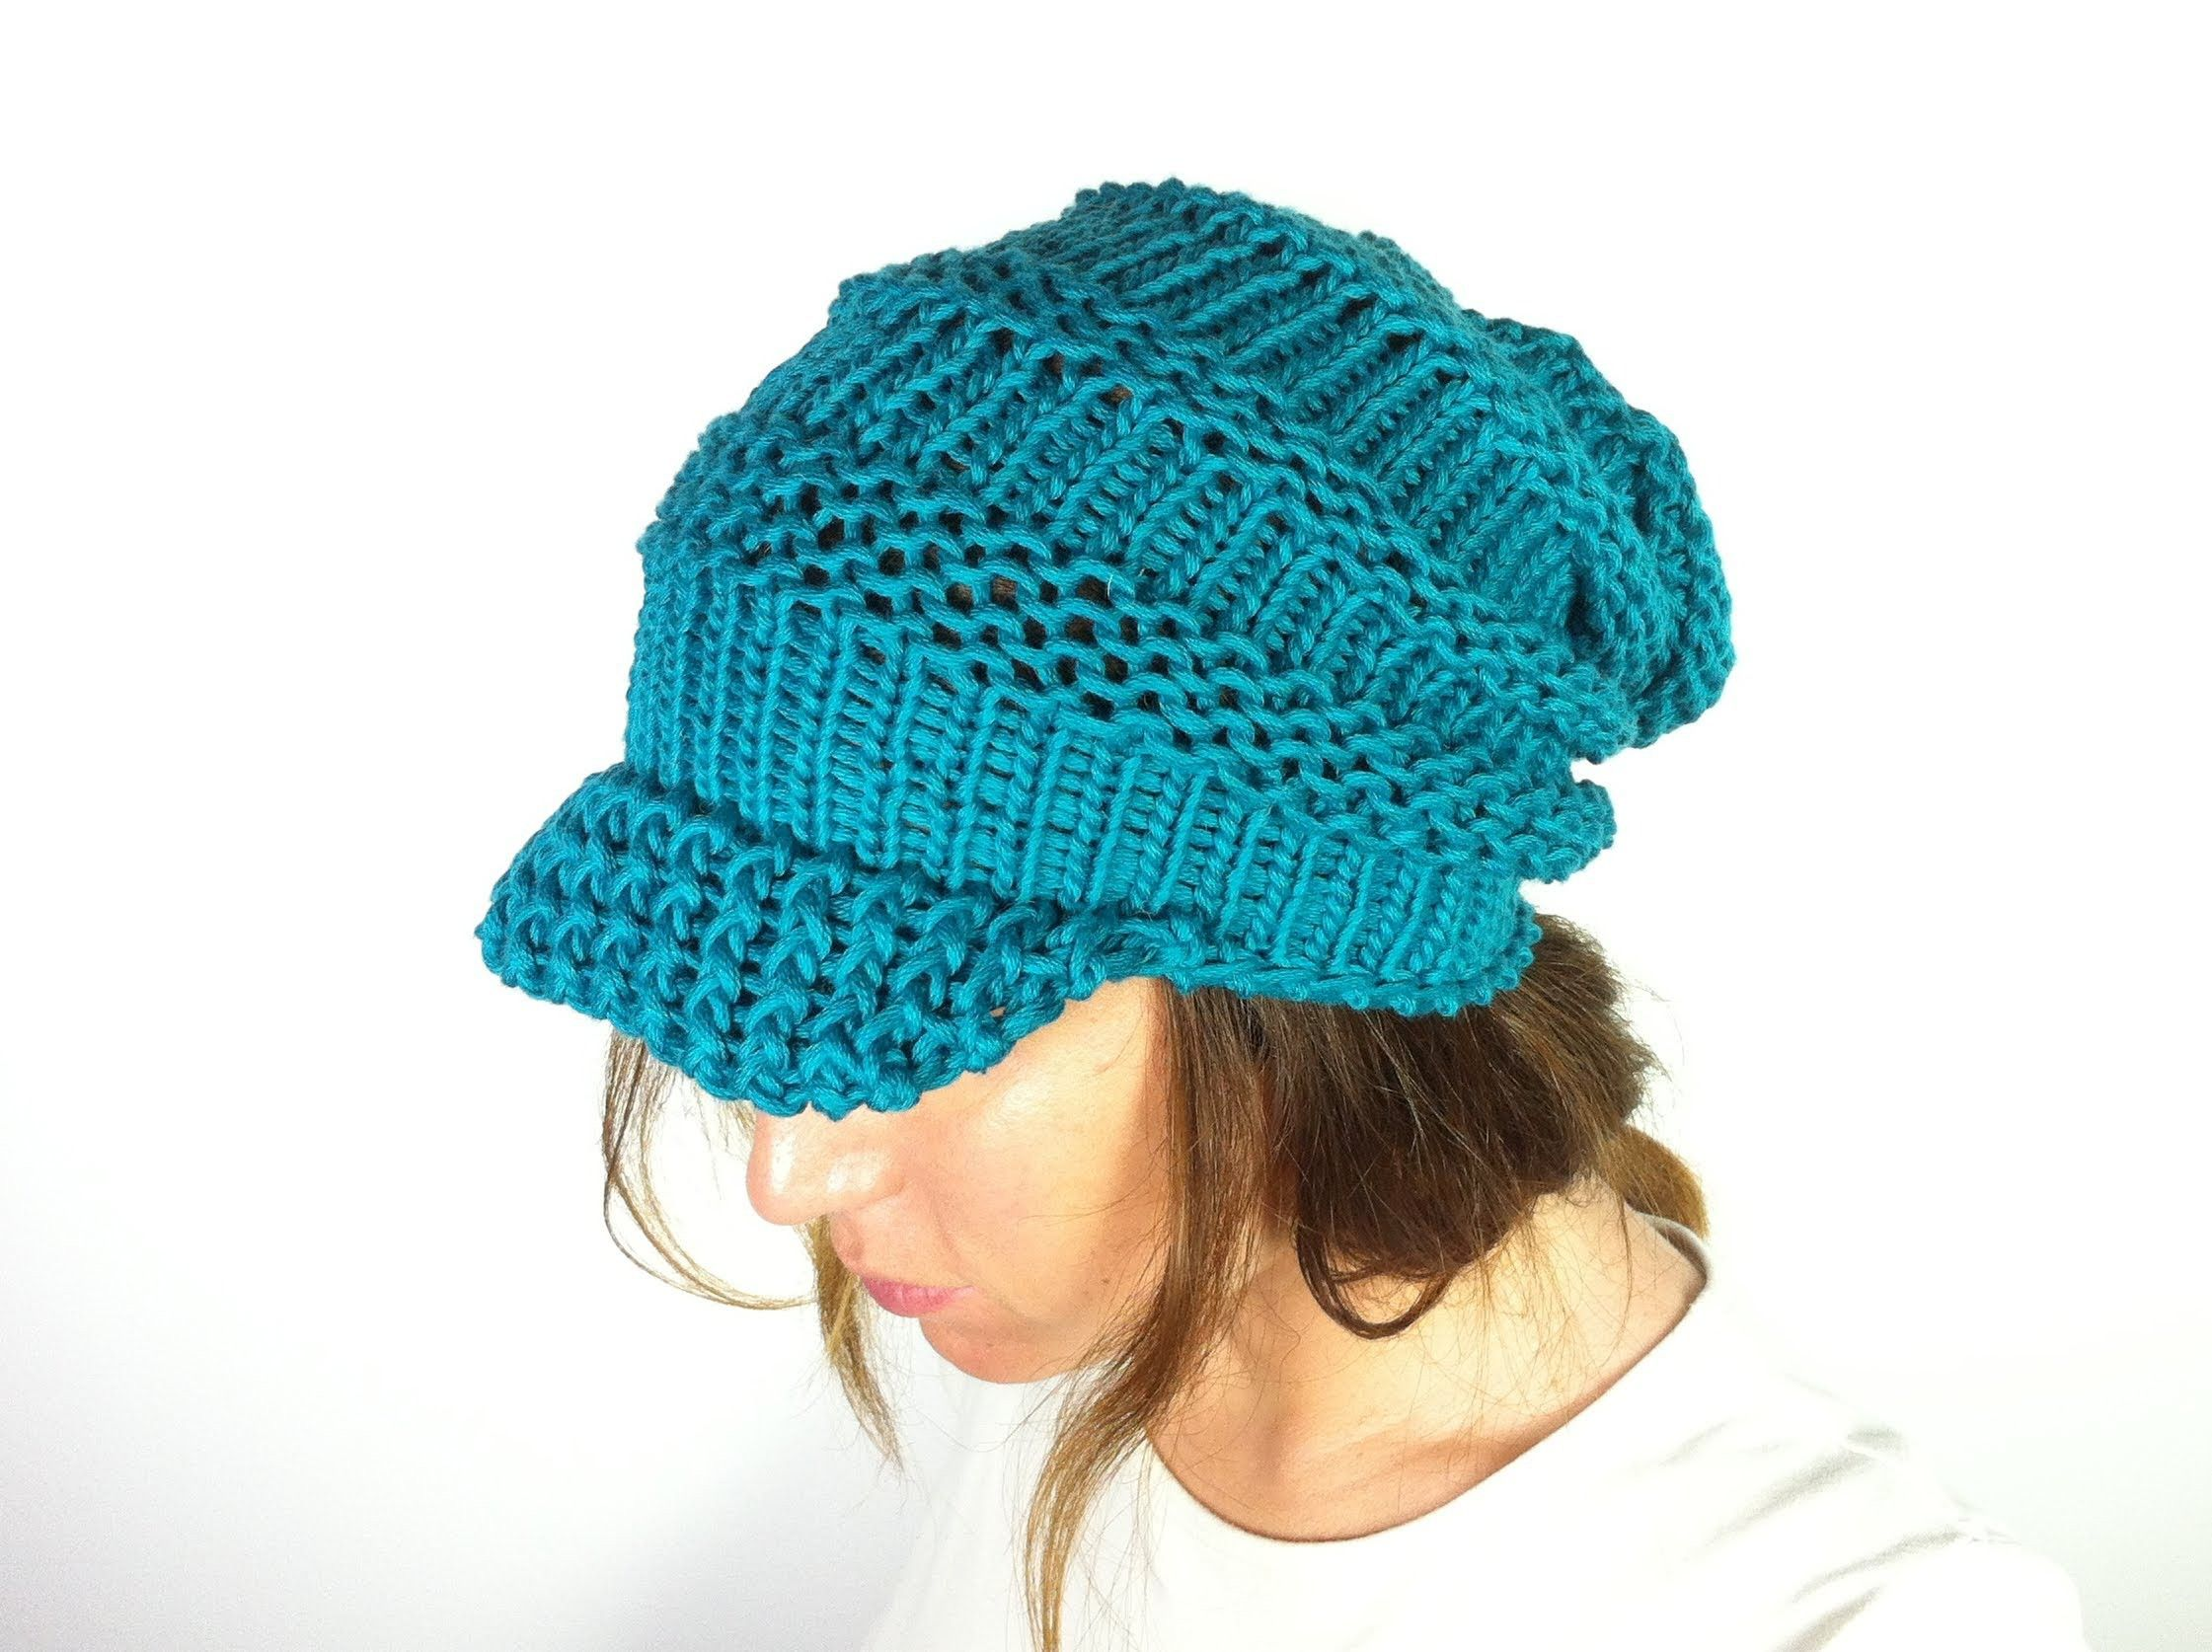 b87af9487 How to Loom Knit a Slouchy Beanie with Visor (DIY Tutorial) | Loom ...